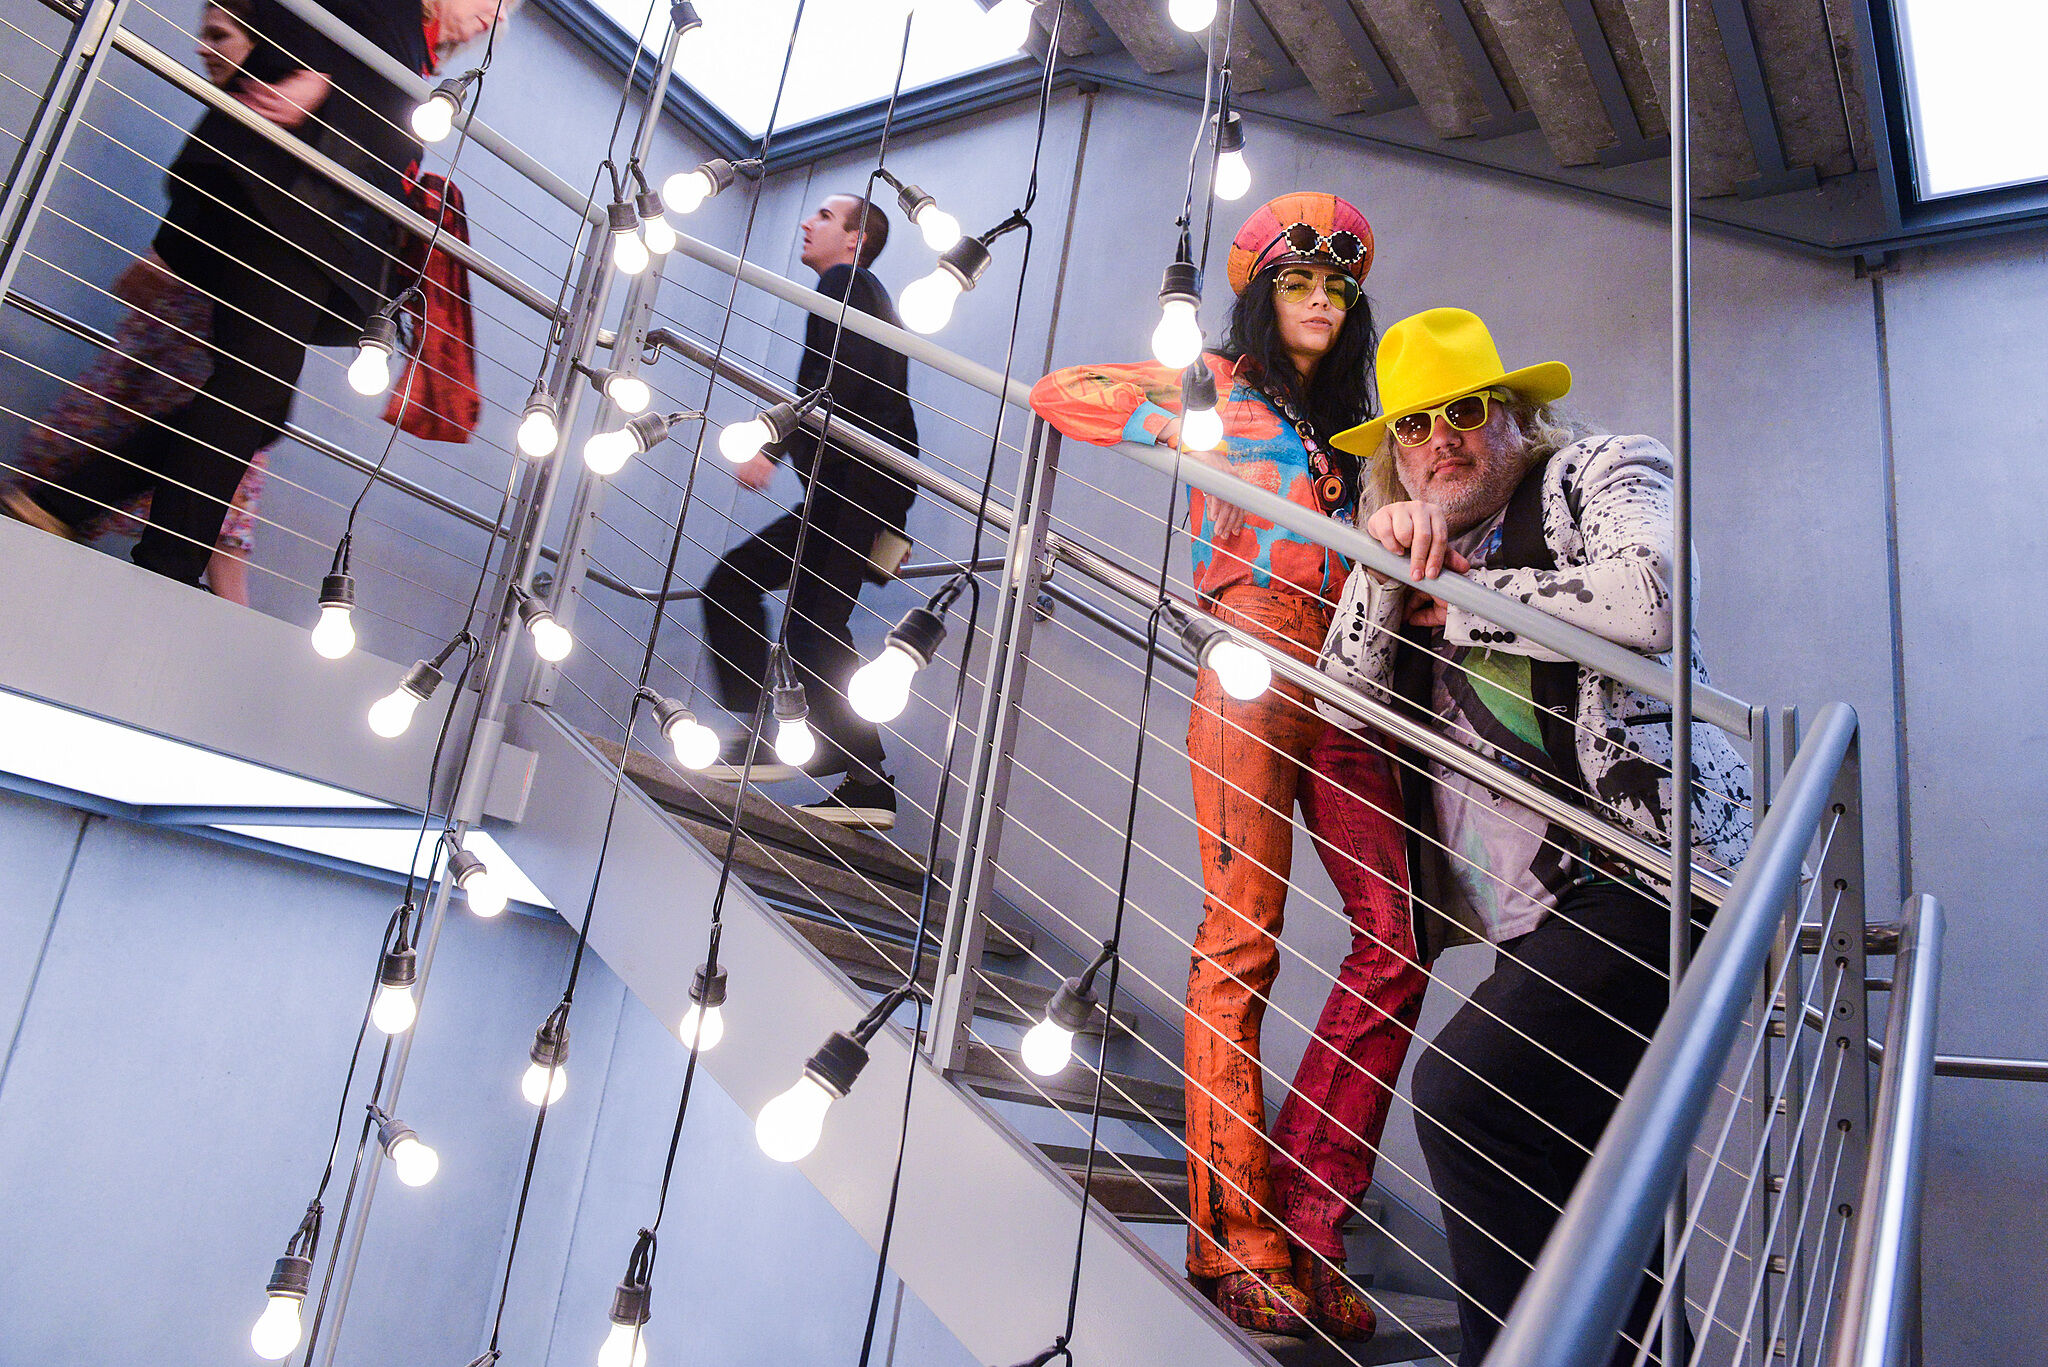 A photo of people standing on the Whitney's staircase dressed in costumes.